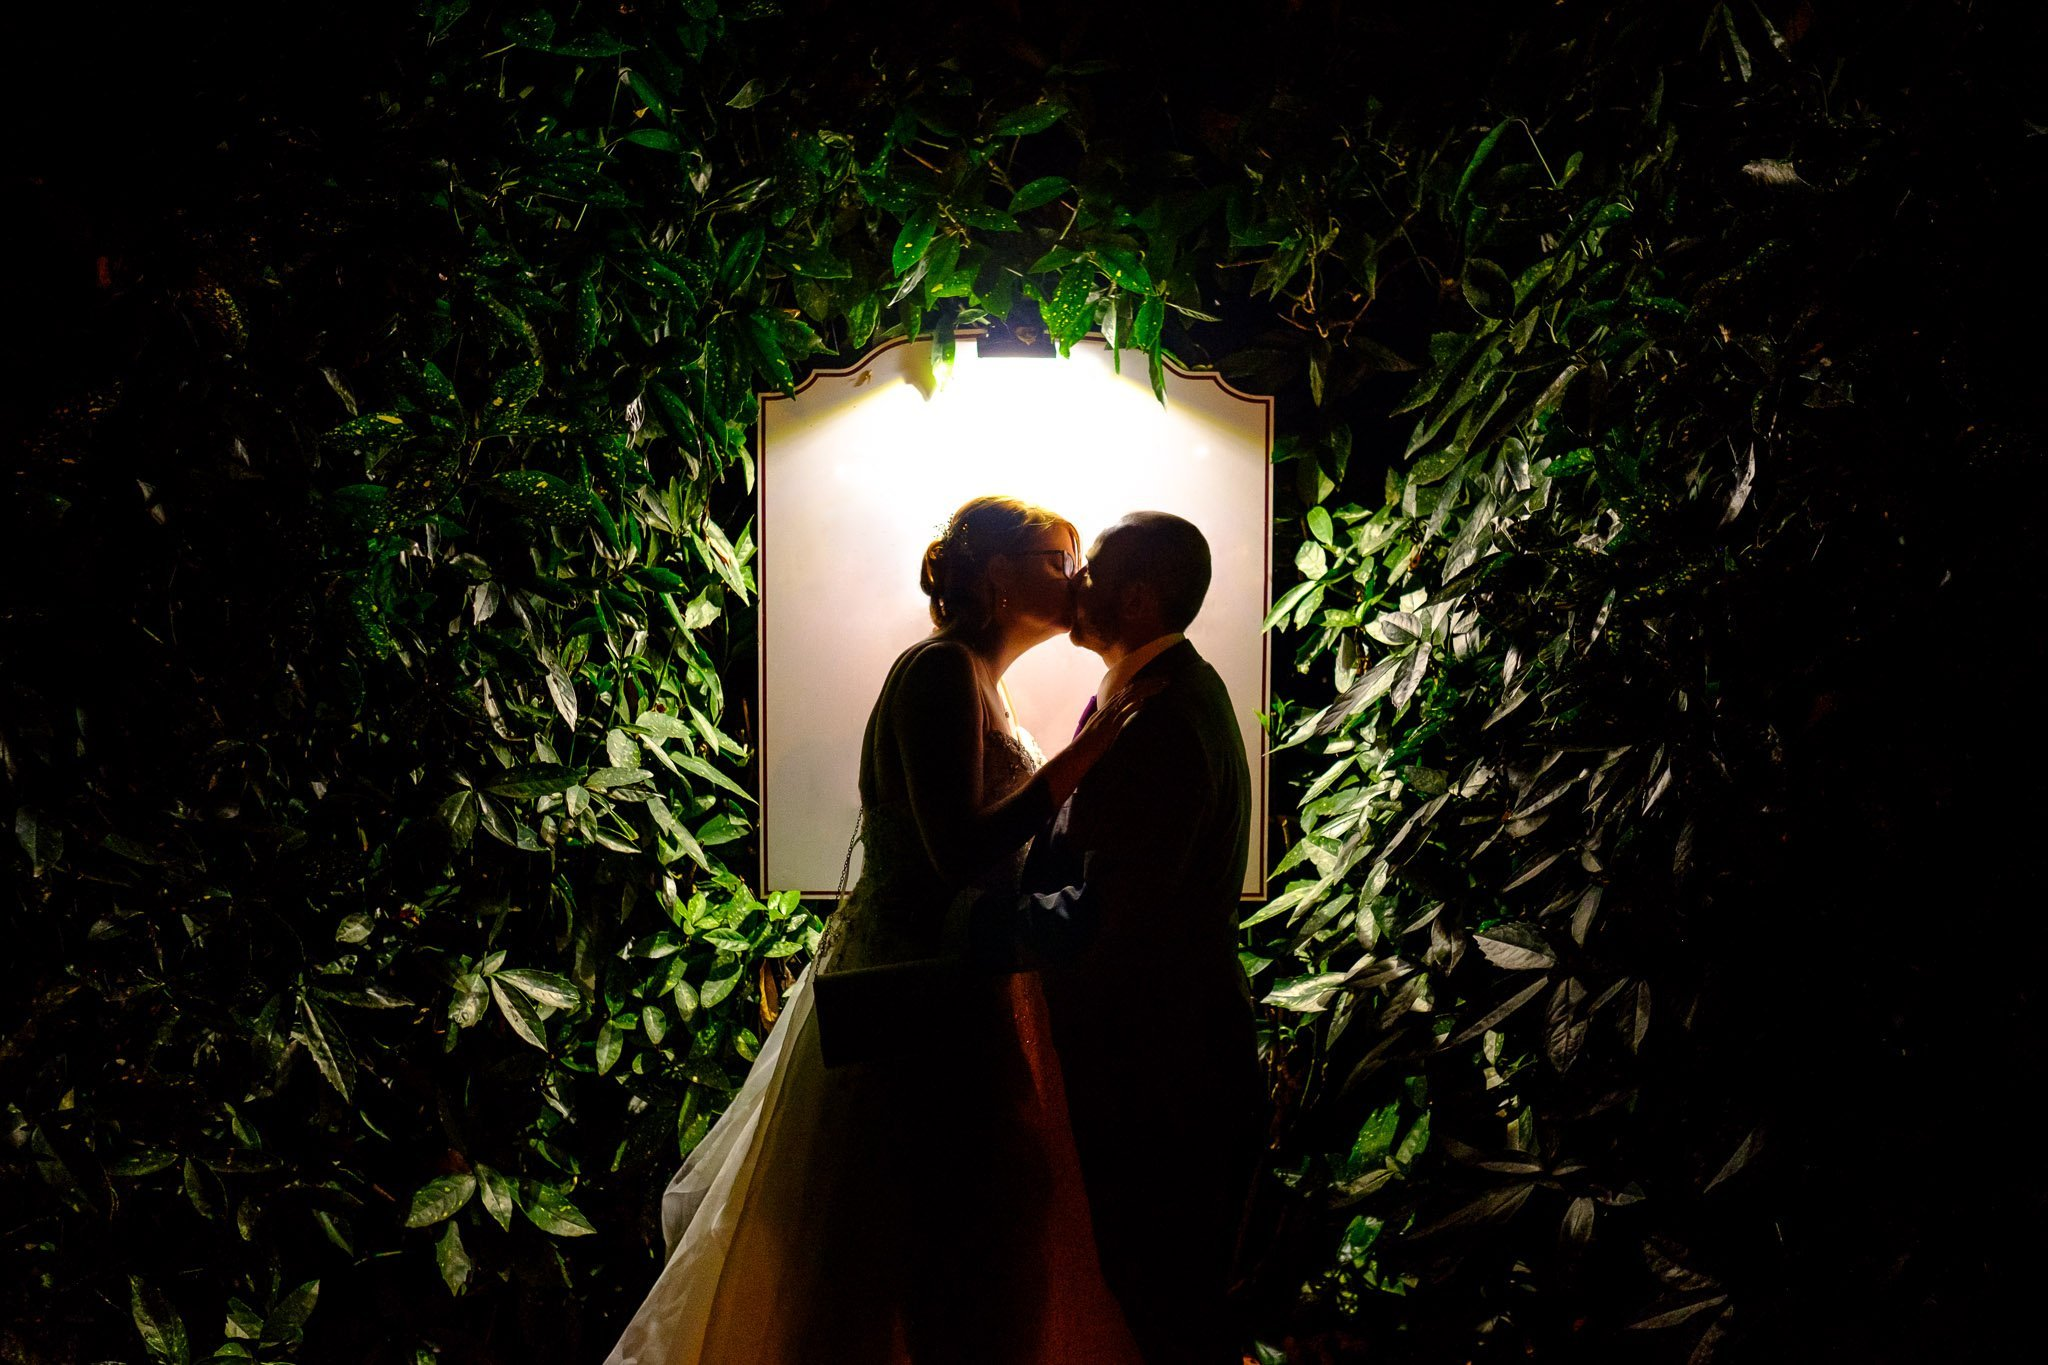 A newly married couple kiss under a street lamp at night, in Essex for an engagement portrait. Photography by thatthingyoupluck.